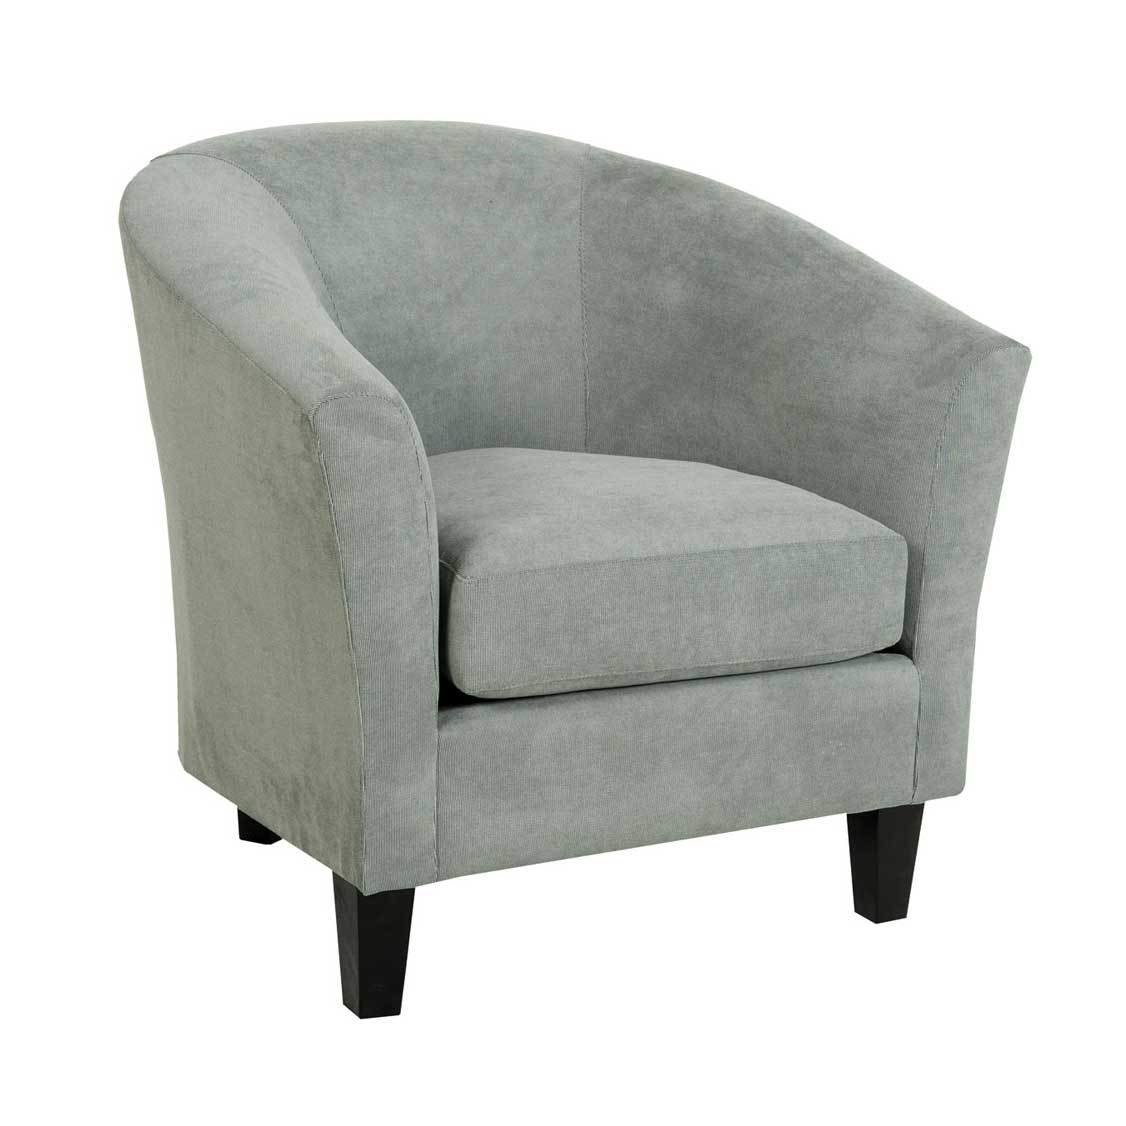 Best Ace Bedroom Chair Port Stephens Fab Furniture With Pictures